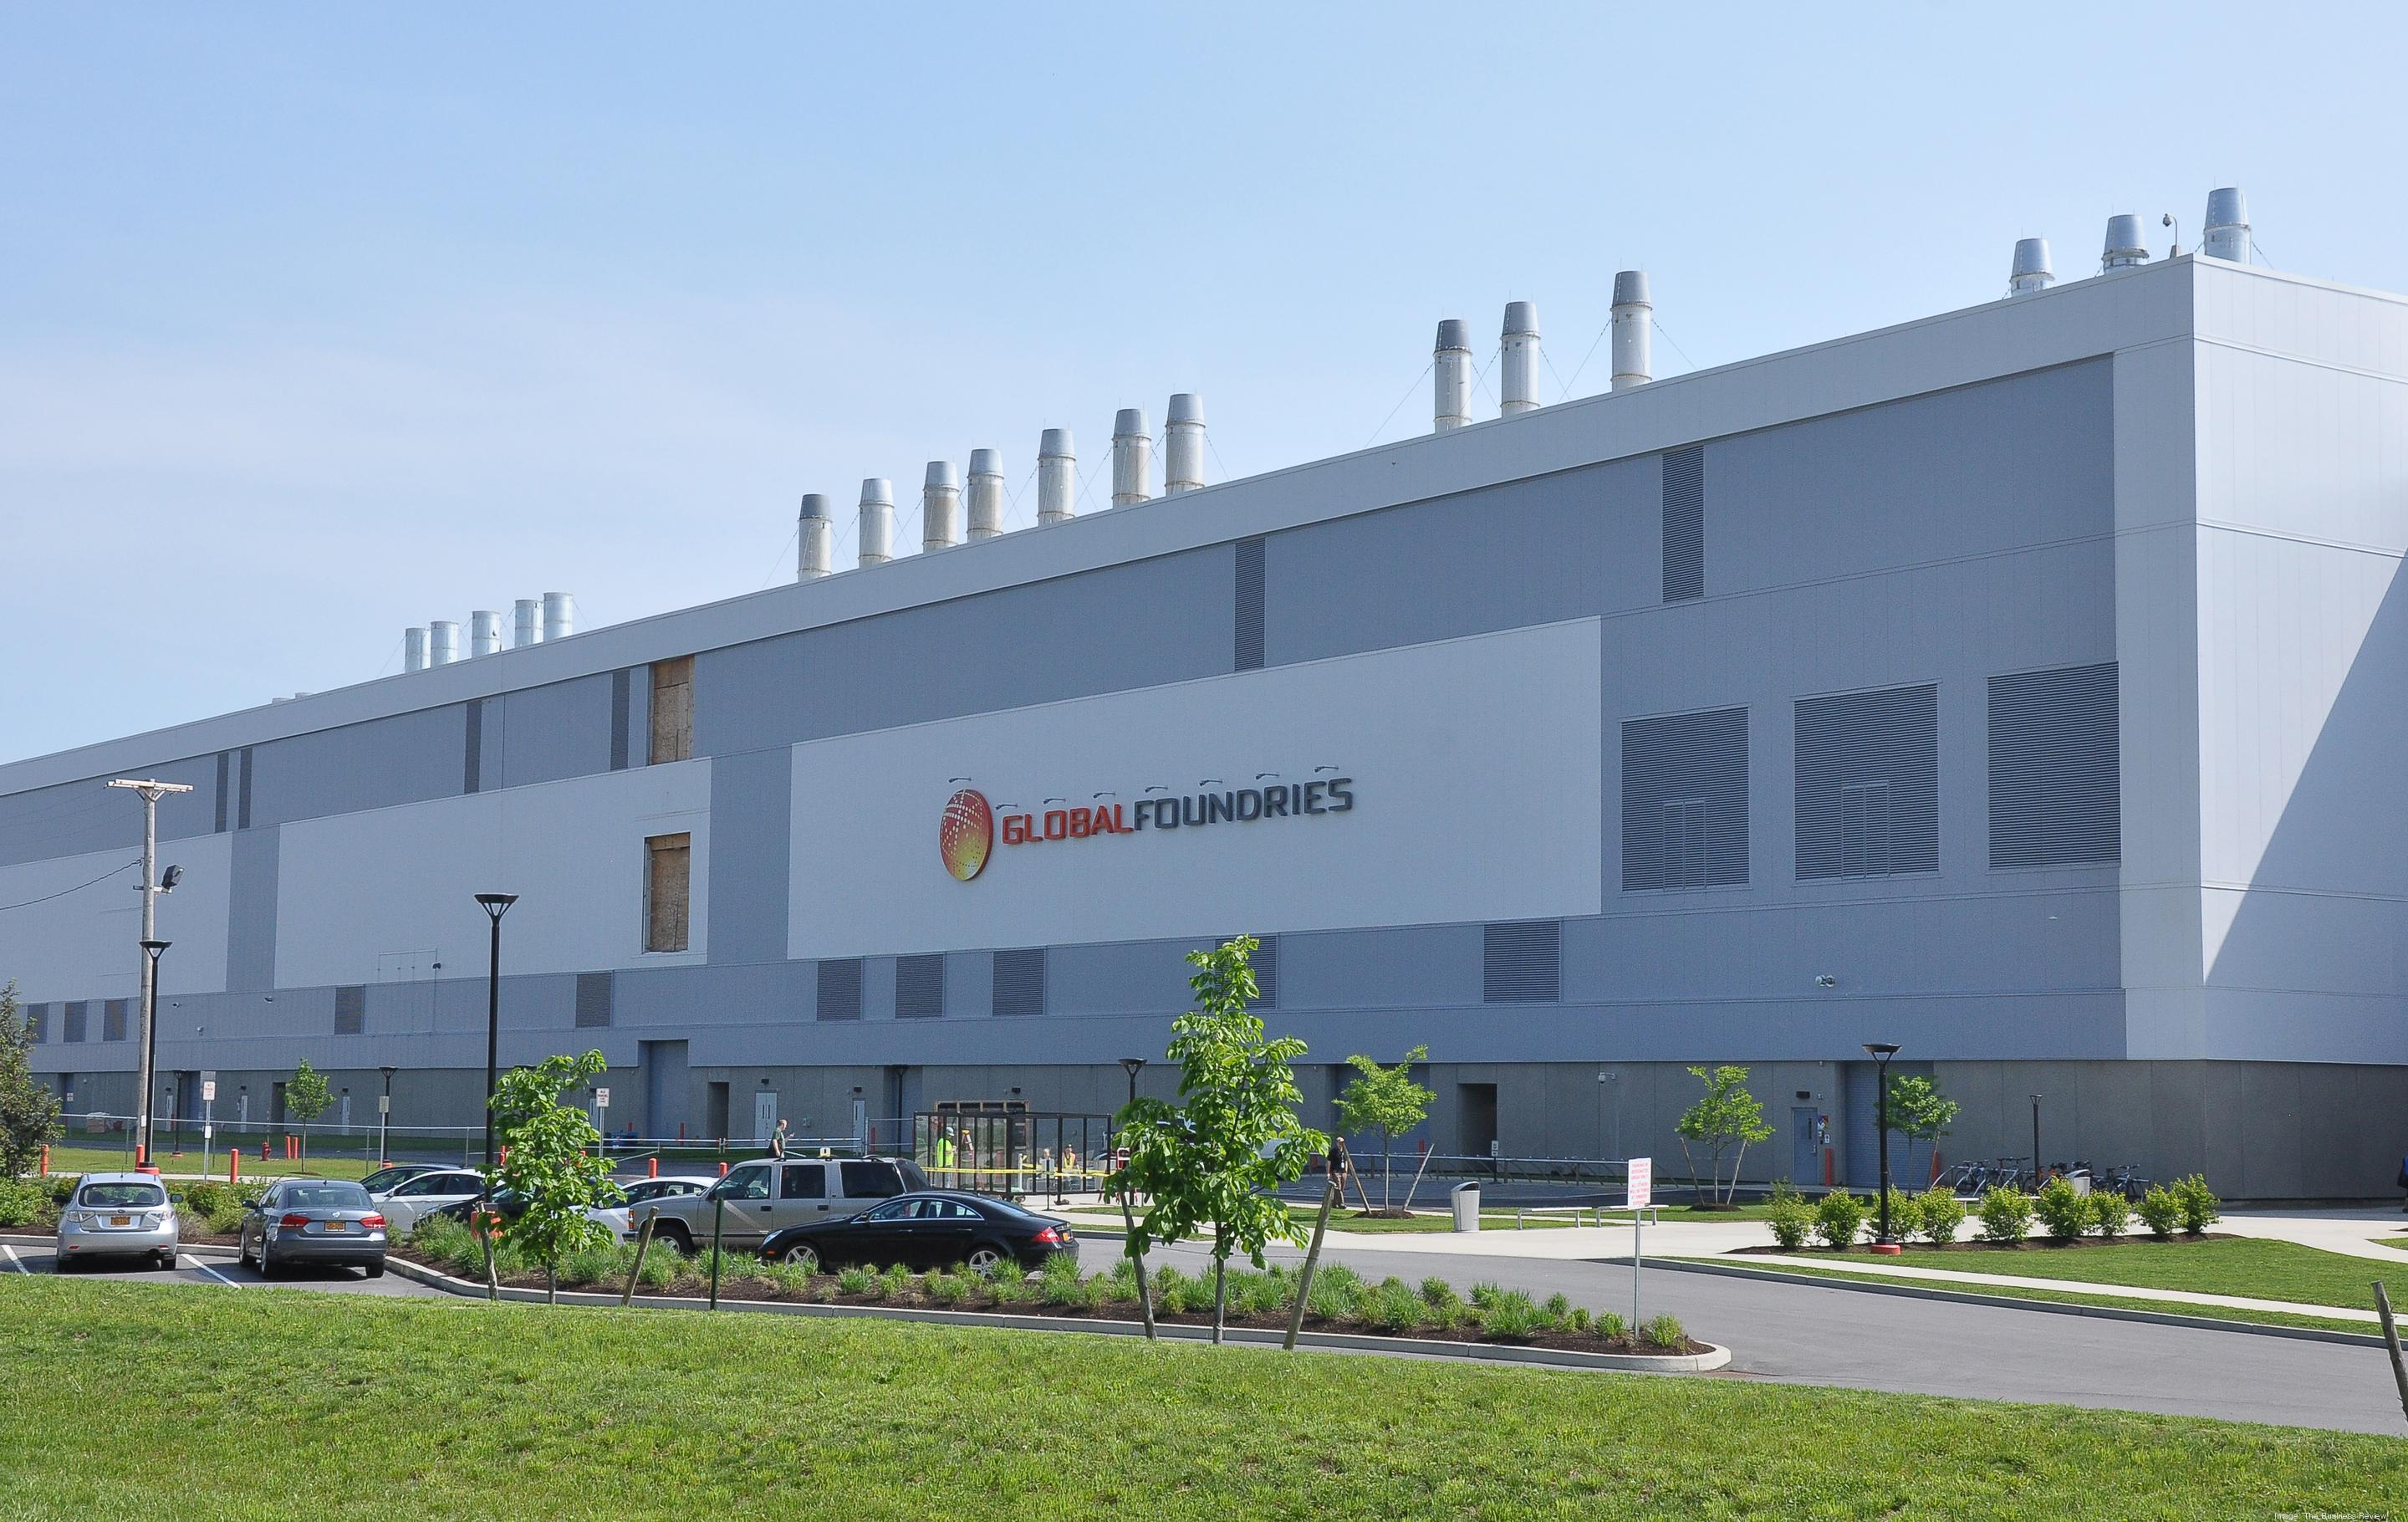 GlobalFoundries-Malta-New-York-plant-001